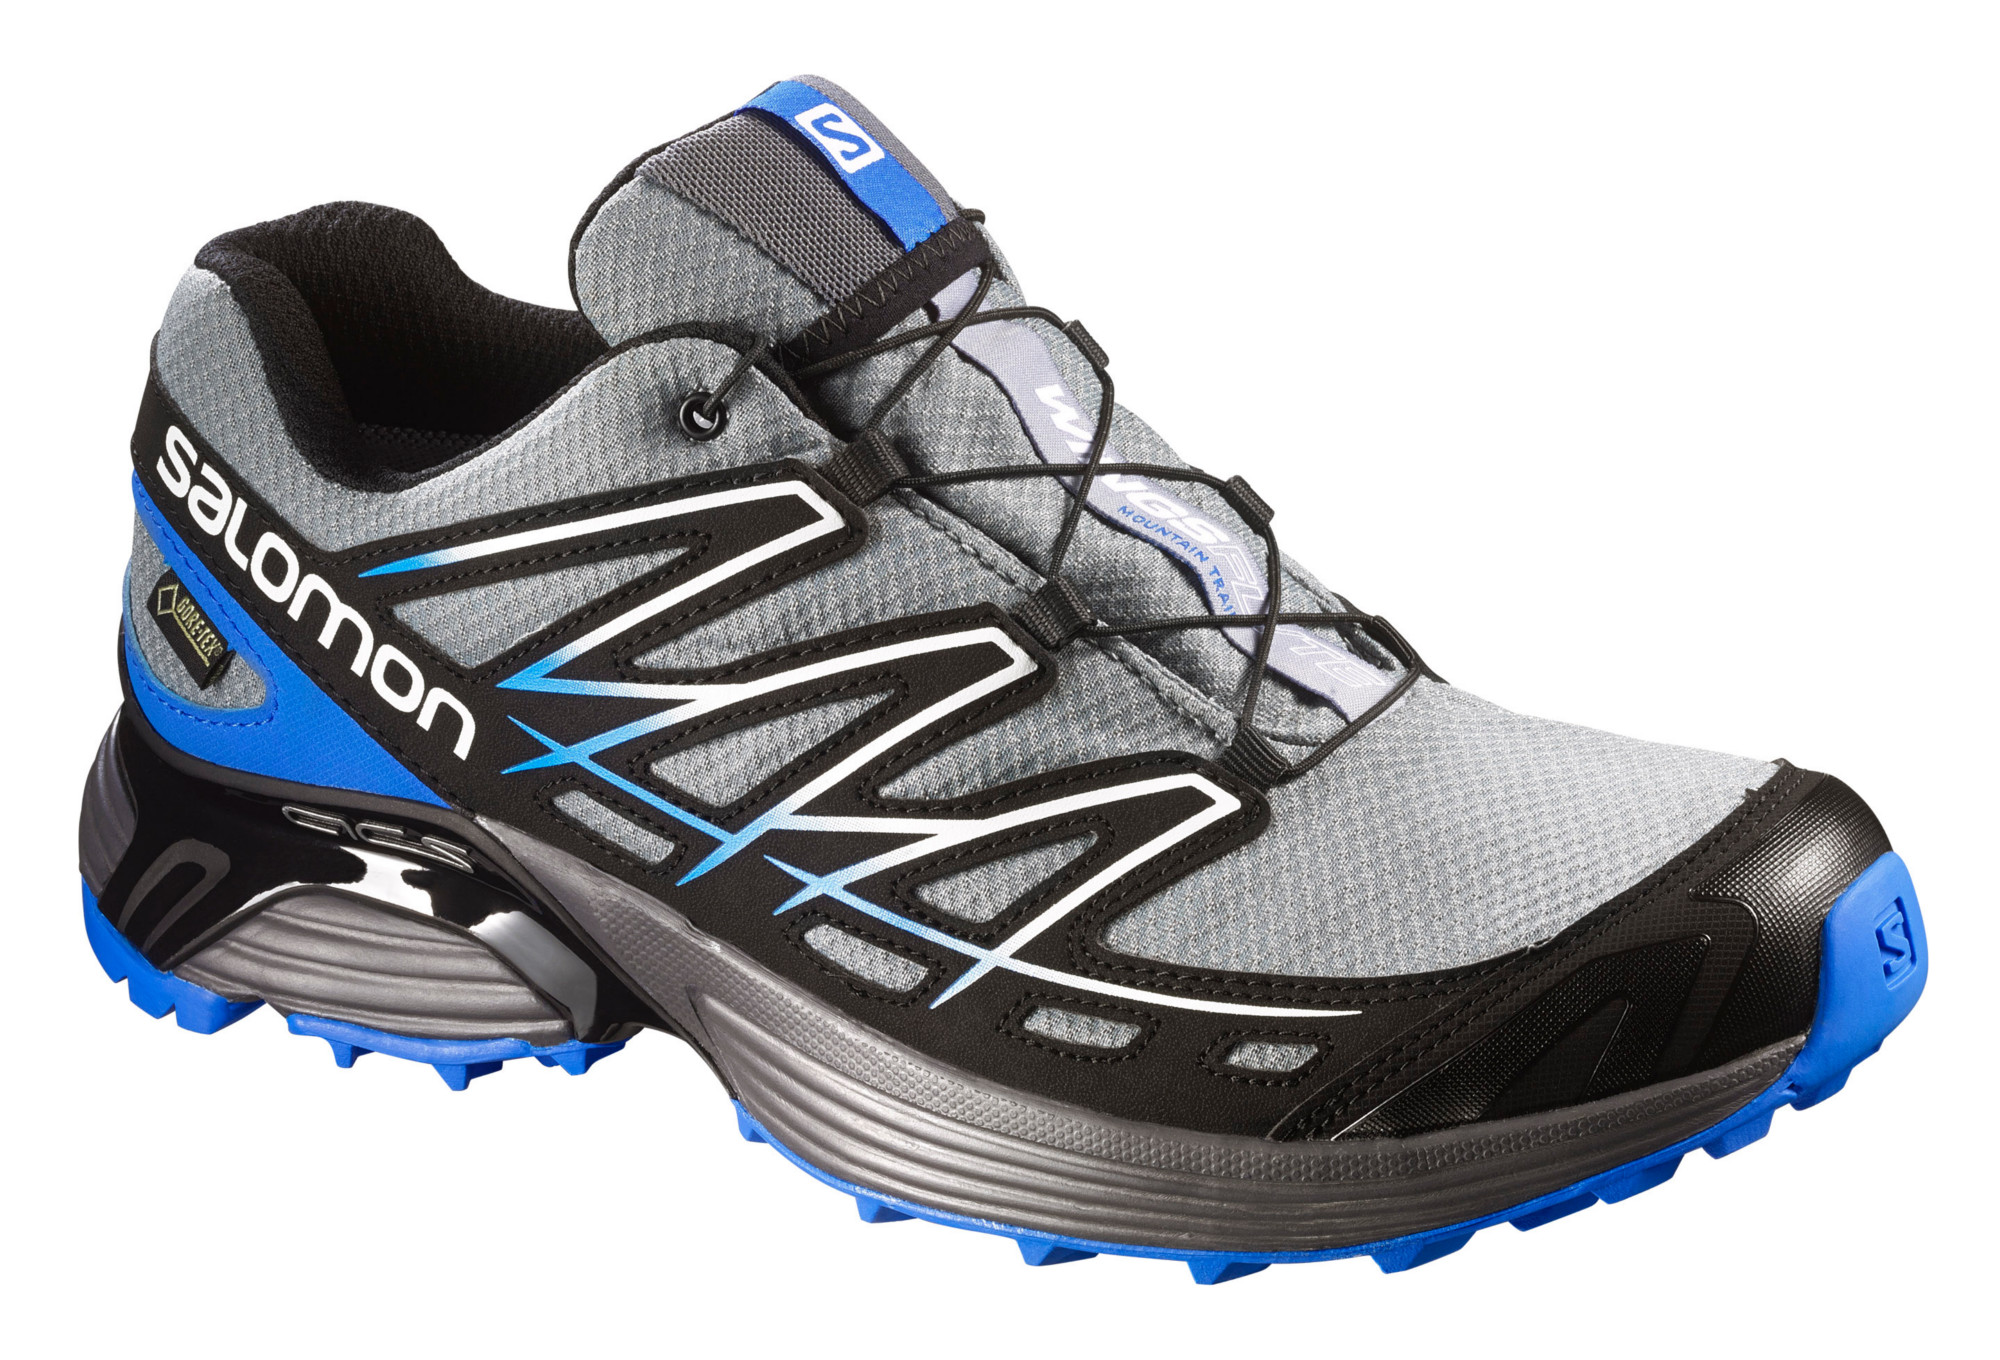 chaussures de trail salomon wings flyte gtx noir bleu gris. Black Bedroom Furniture Sets. Home Design Ideas